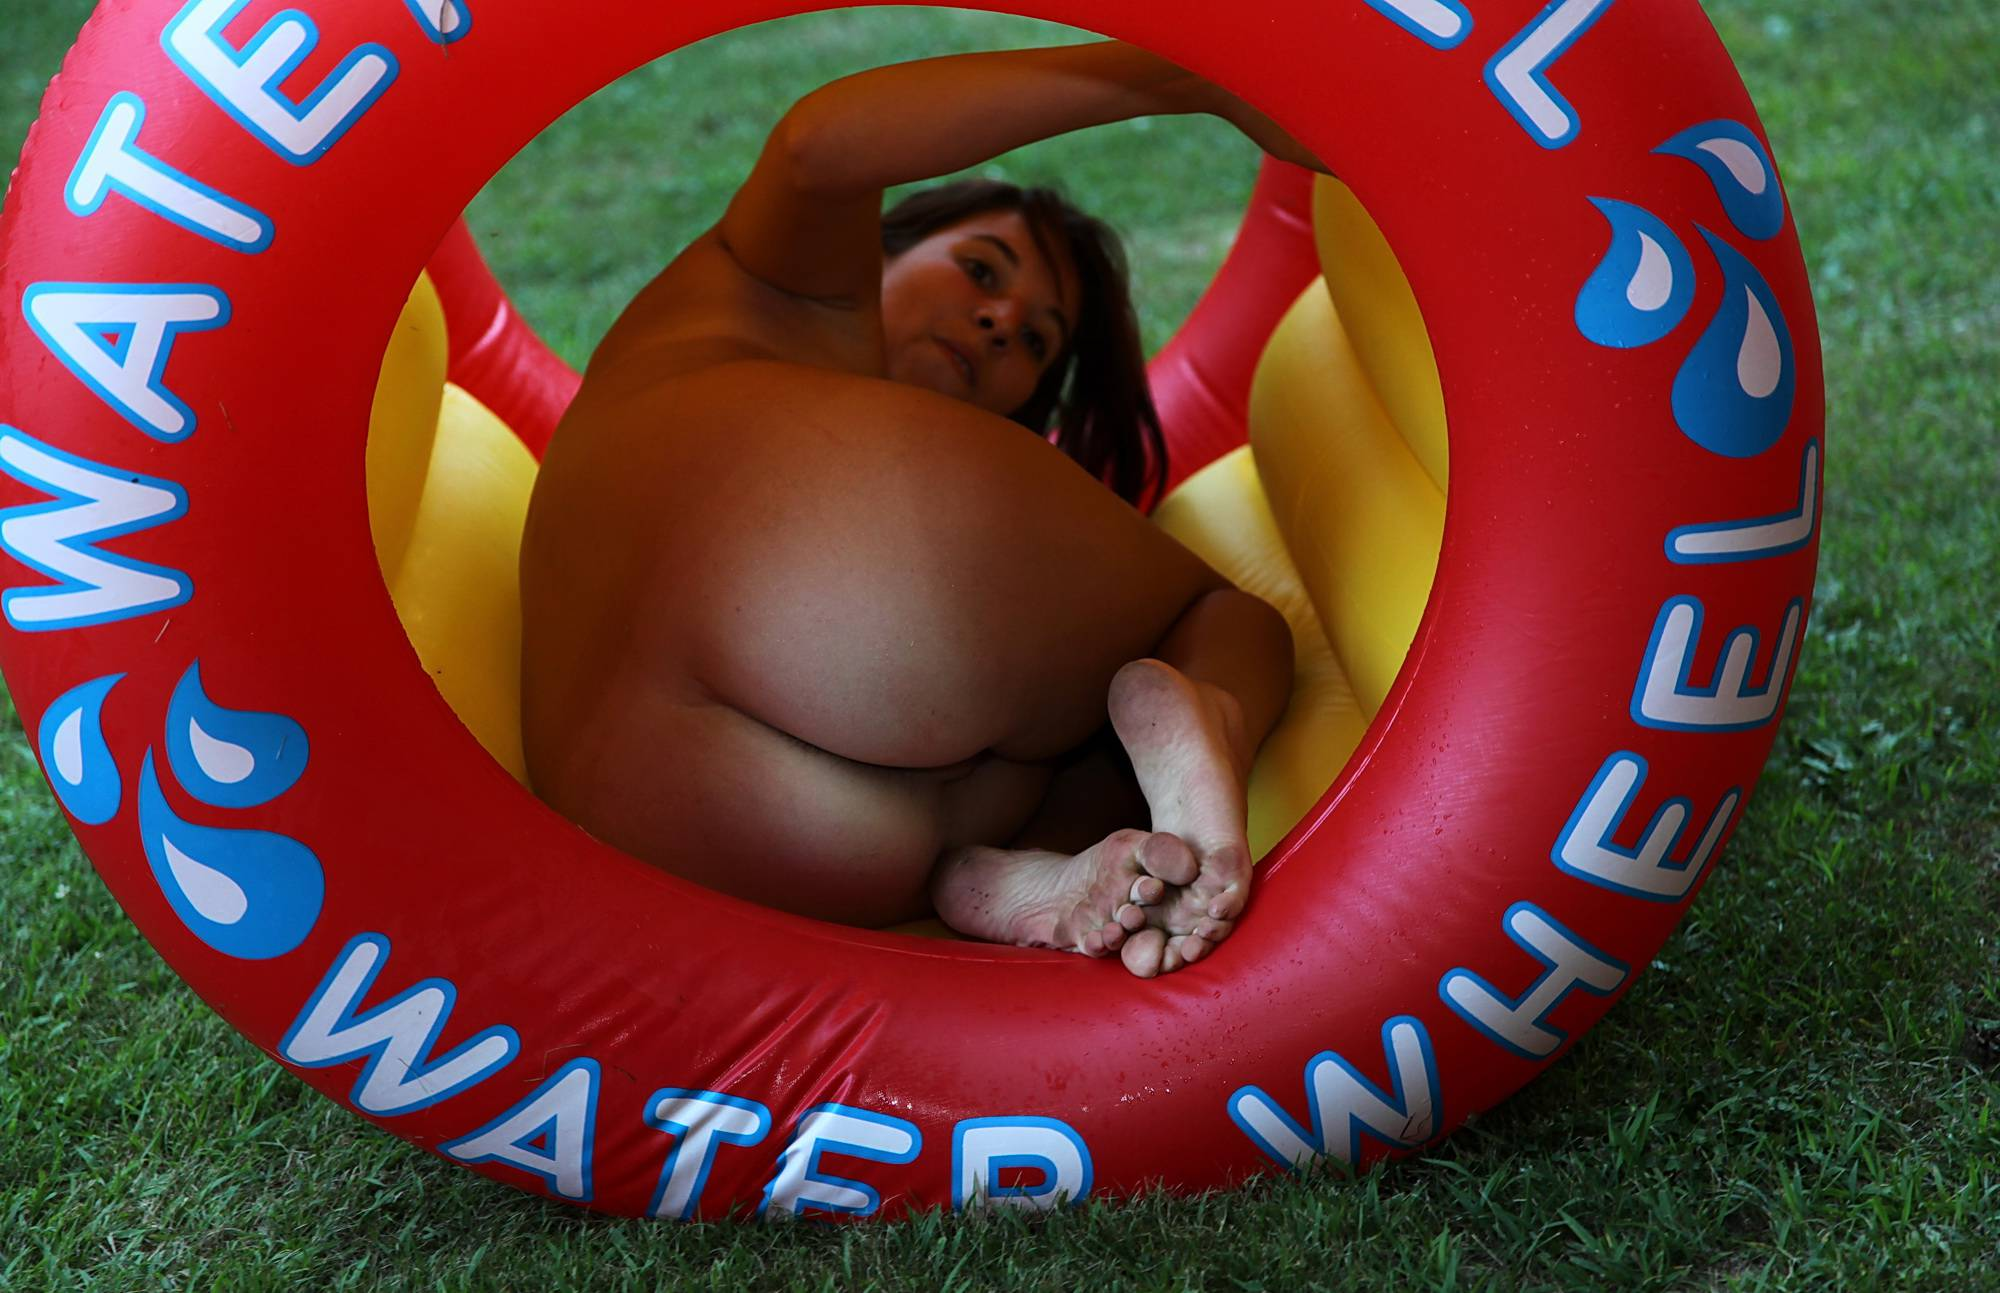 Nudist Pictures Water Wheel Grass Roll - 1